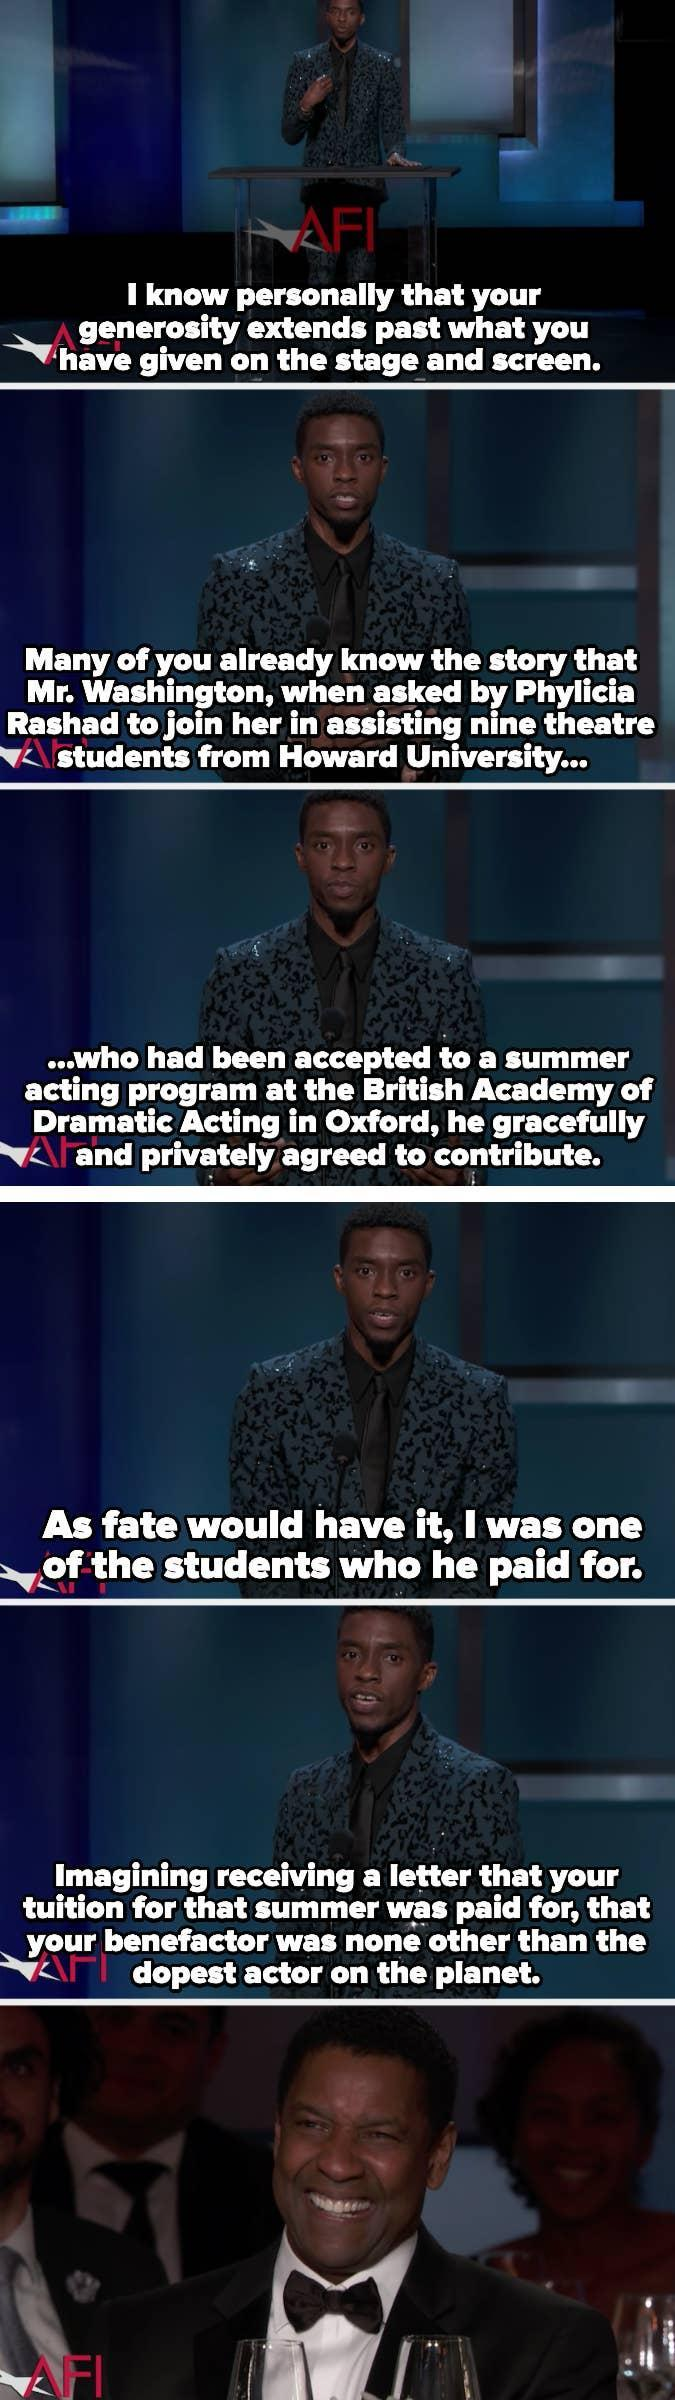 """Chadwick describes his reaction upon hearing his tuition was paid for by """"the dopest actor on the planet"""""""